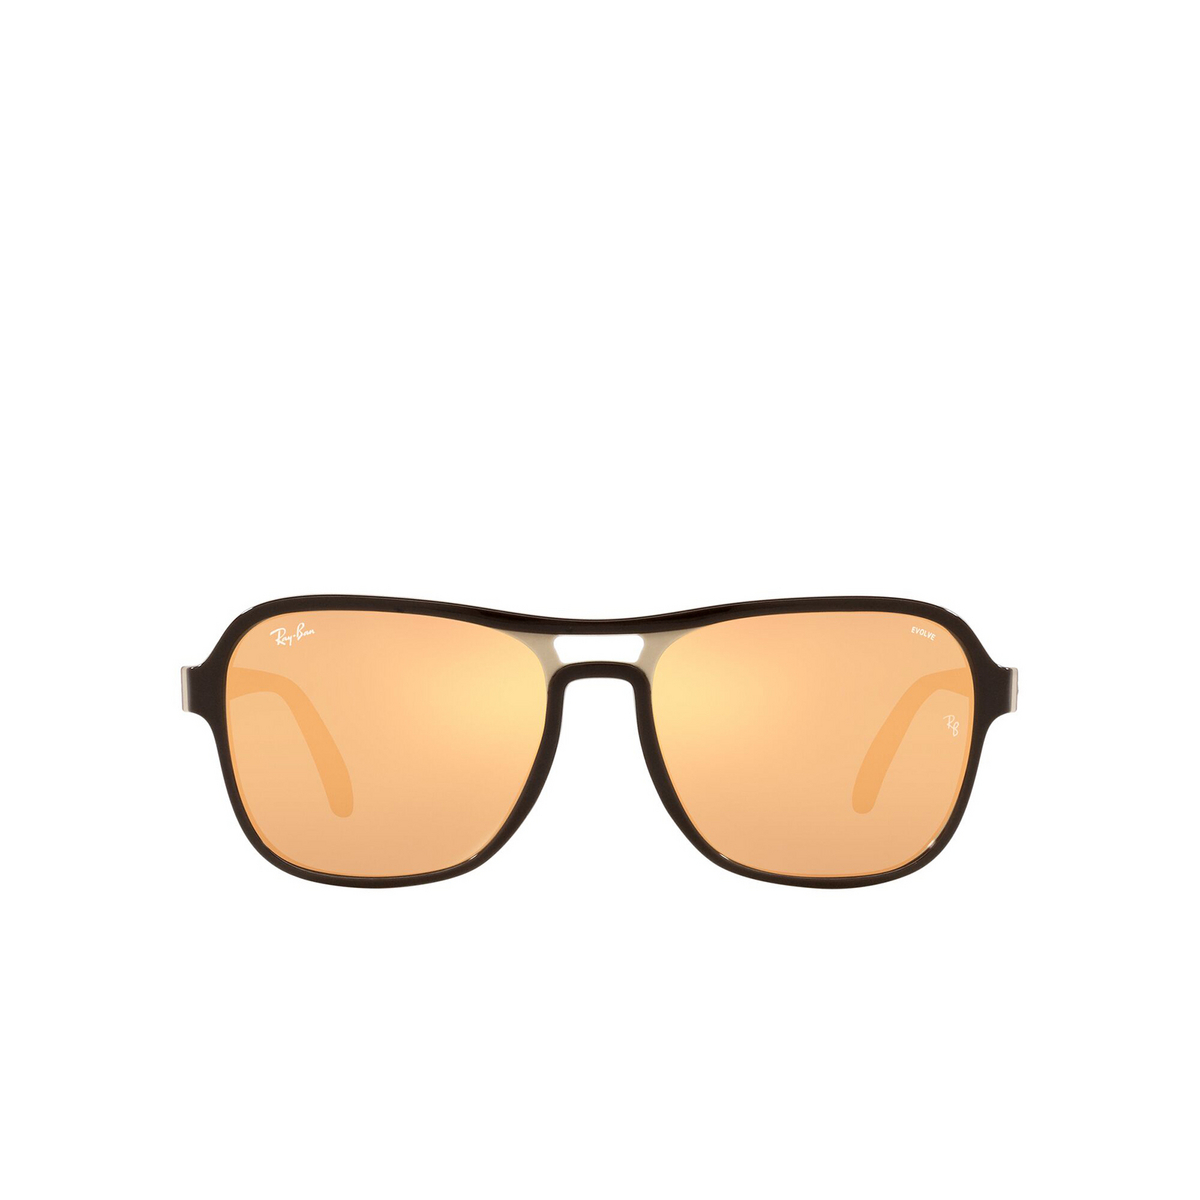 Ray-Ban® Square Sunglasses: State Side RB4356 color Dark Brown Light Brown 6547B4 - front view.